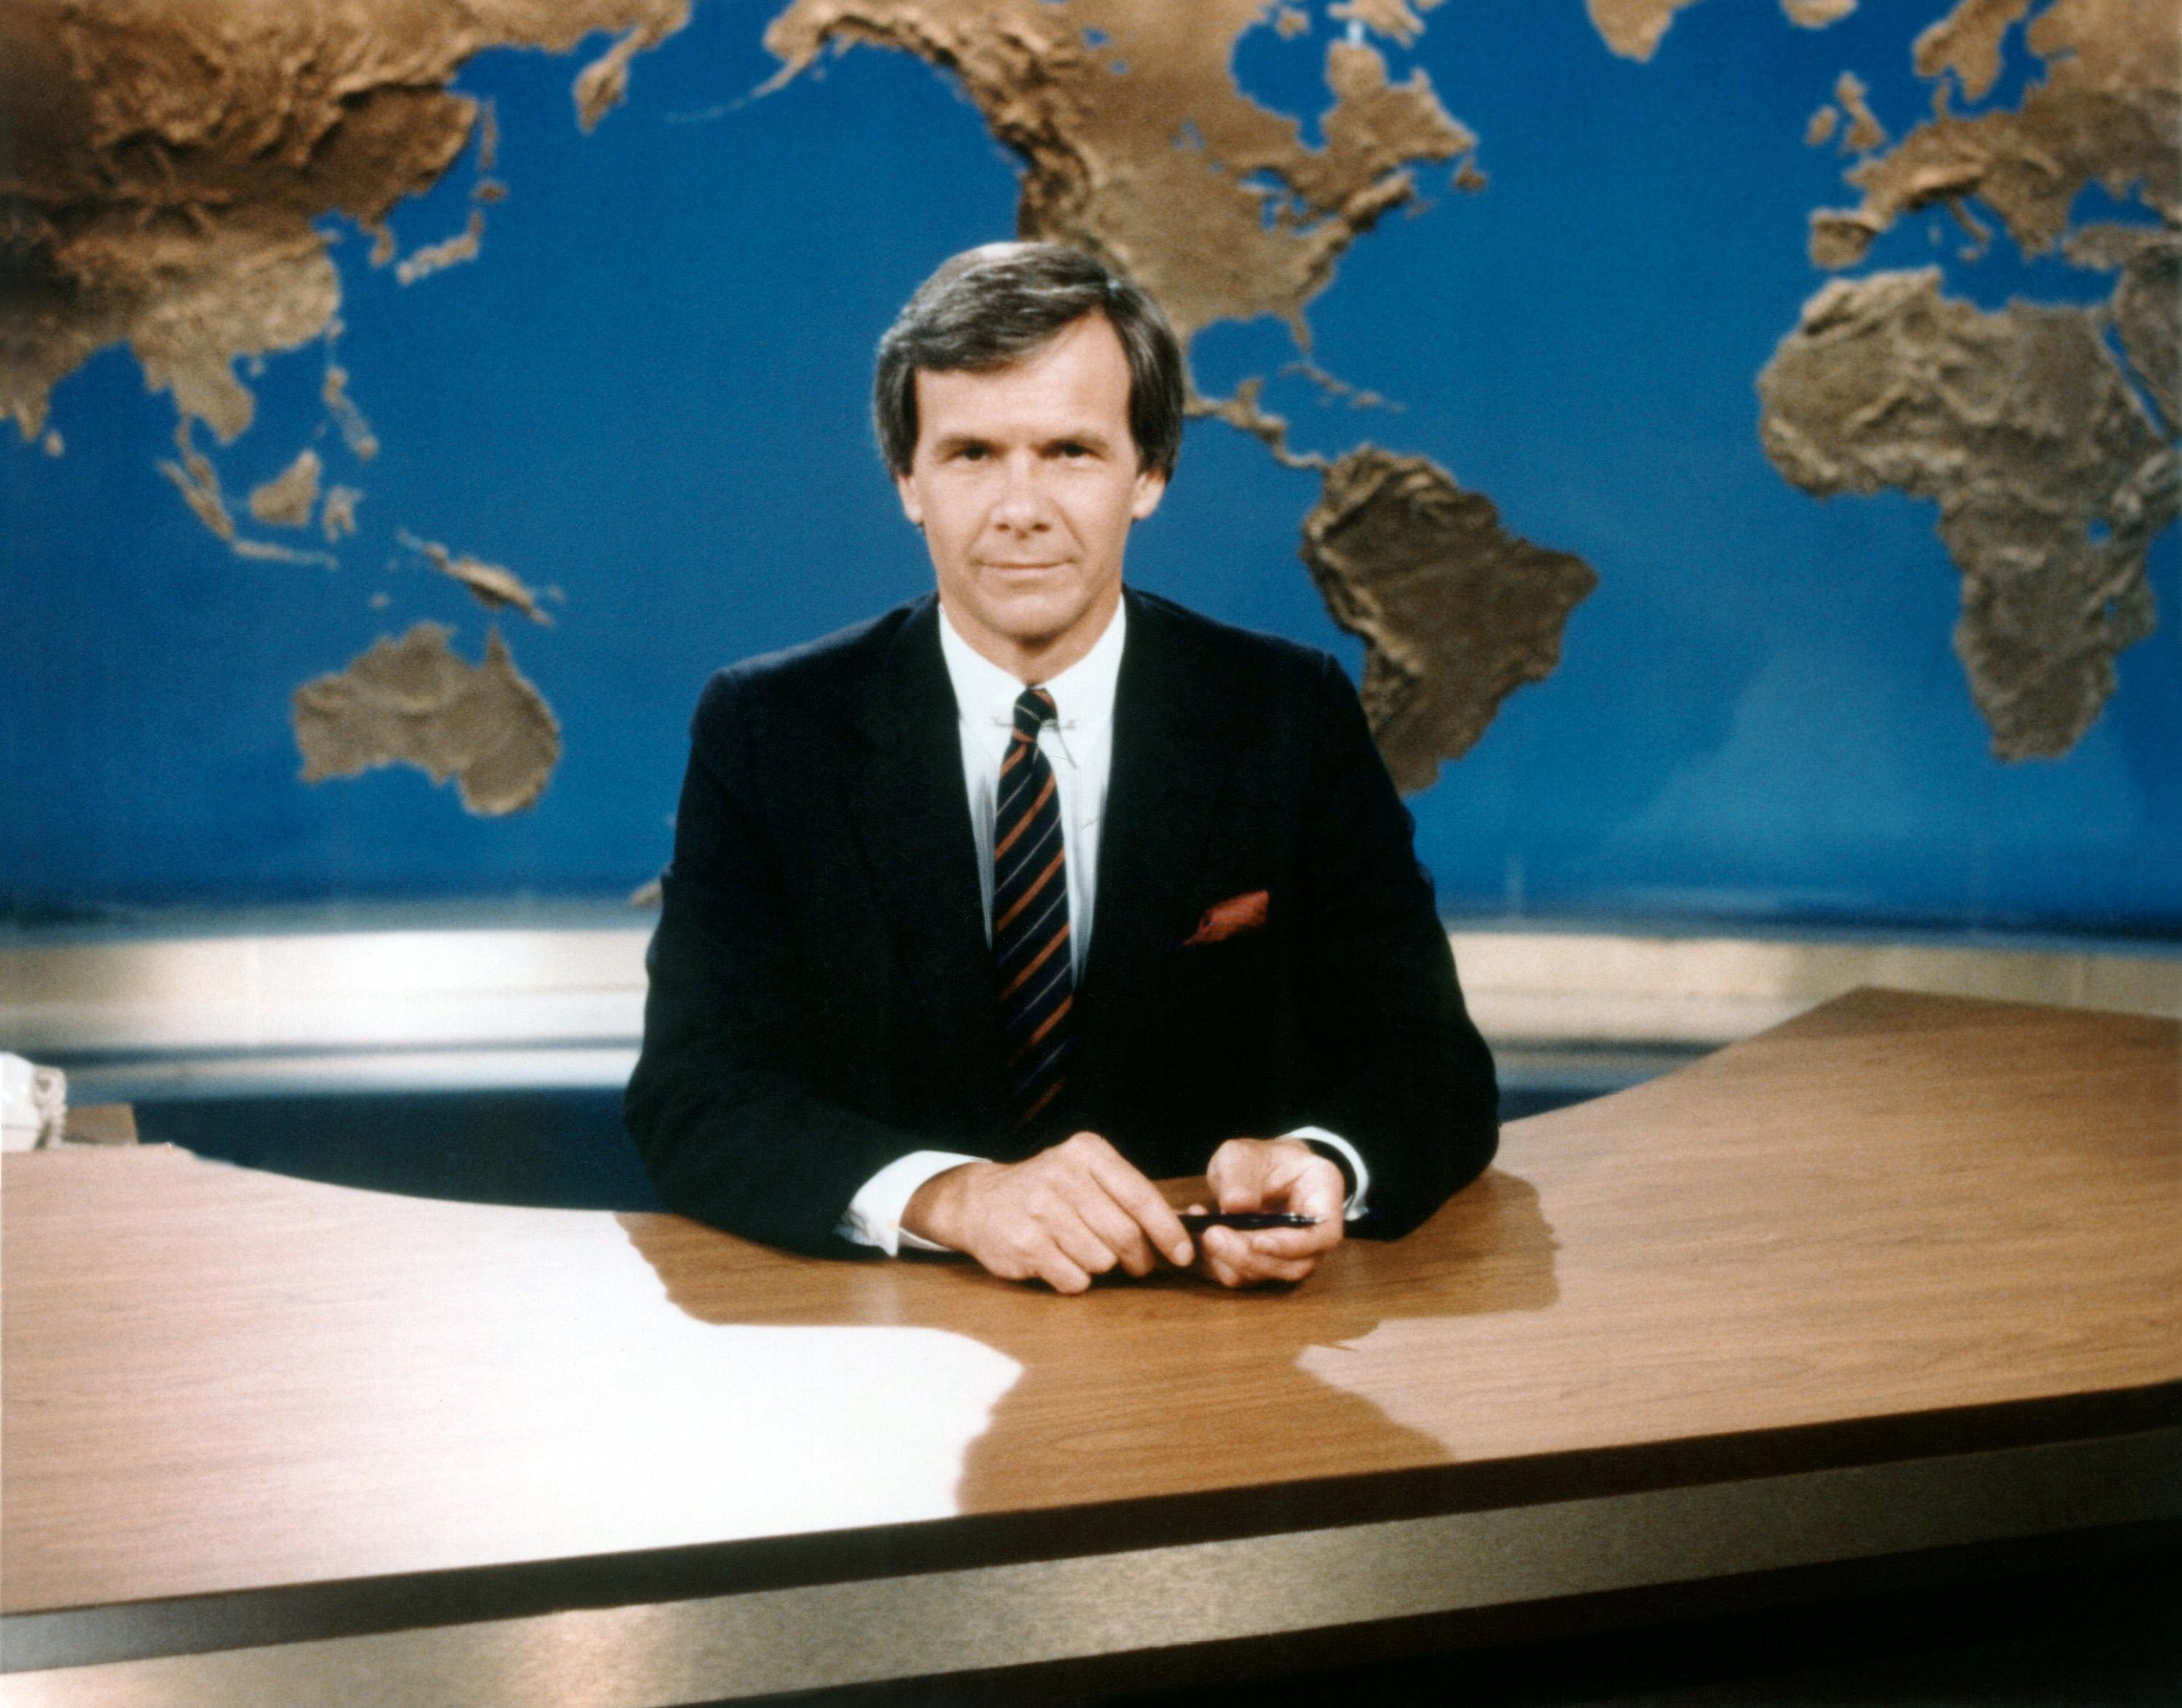 Tom Brokaw retires after 55 years at NBC News